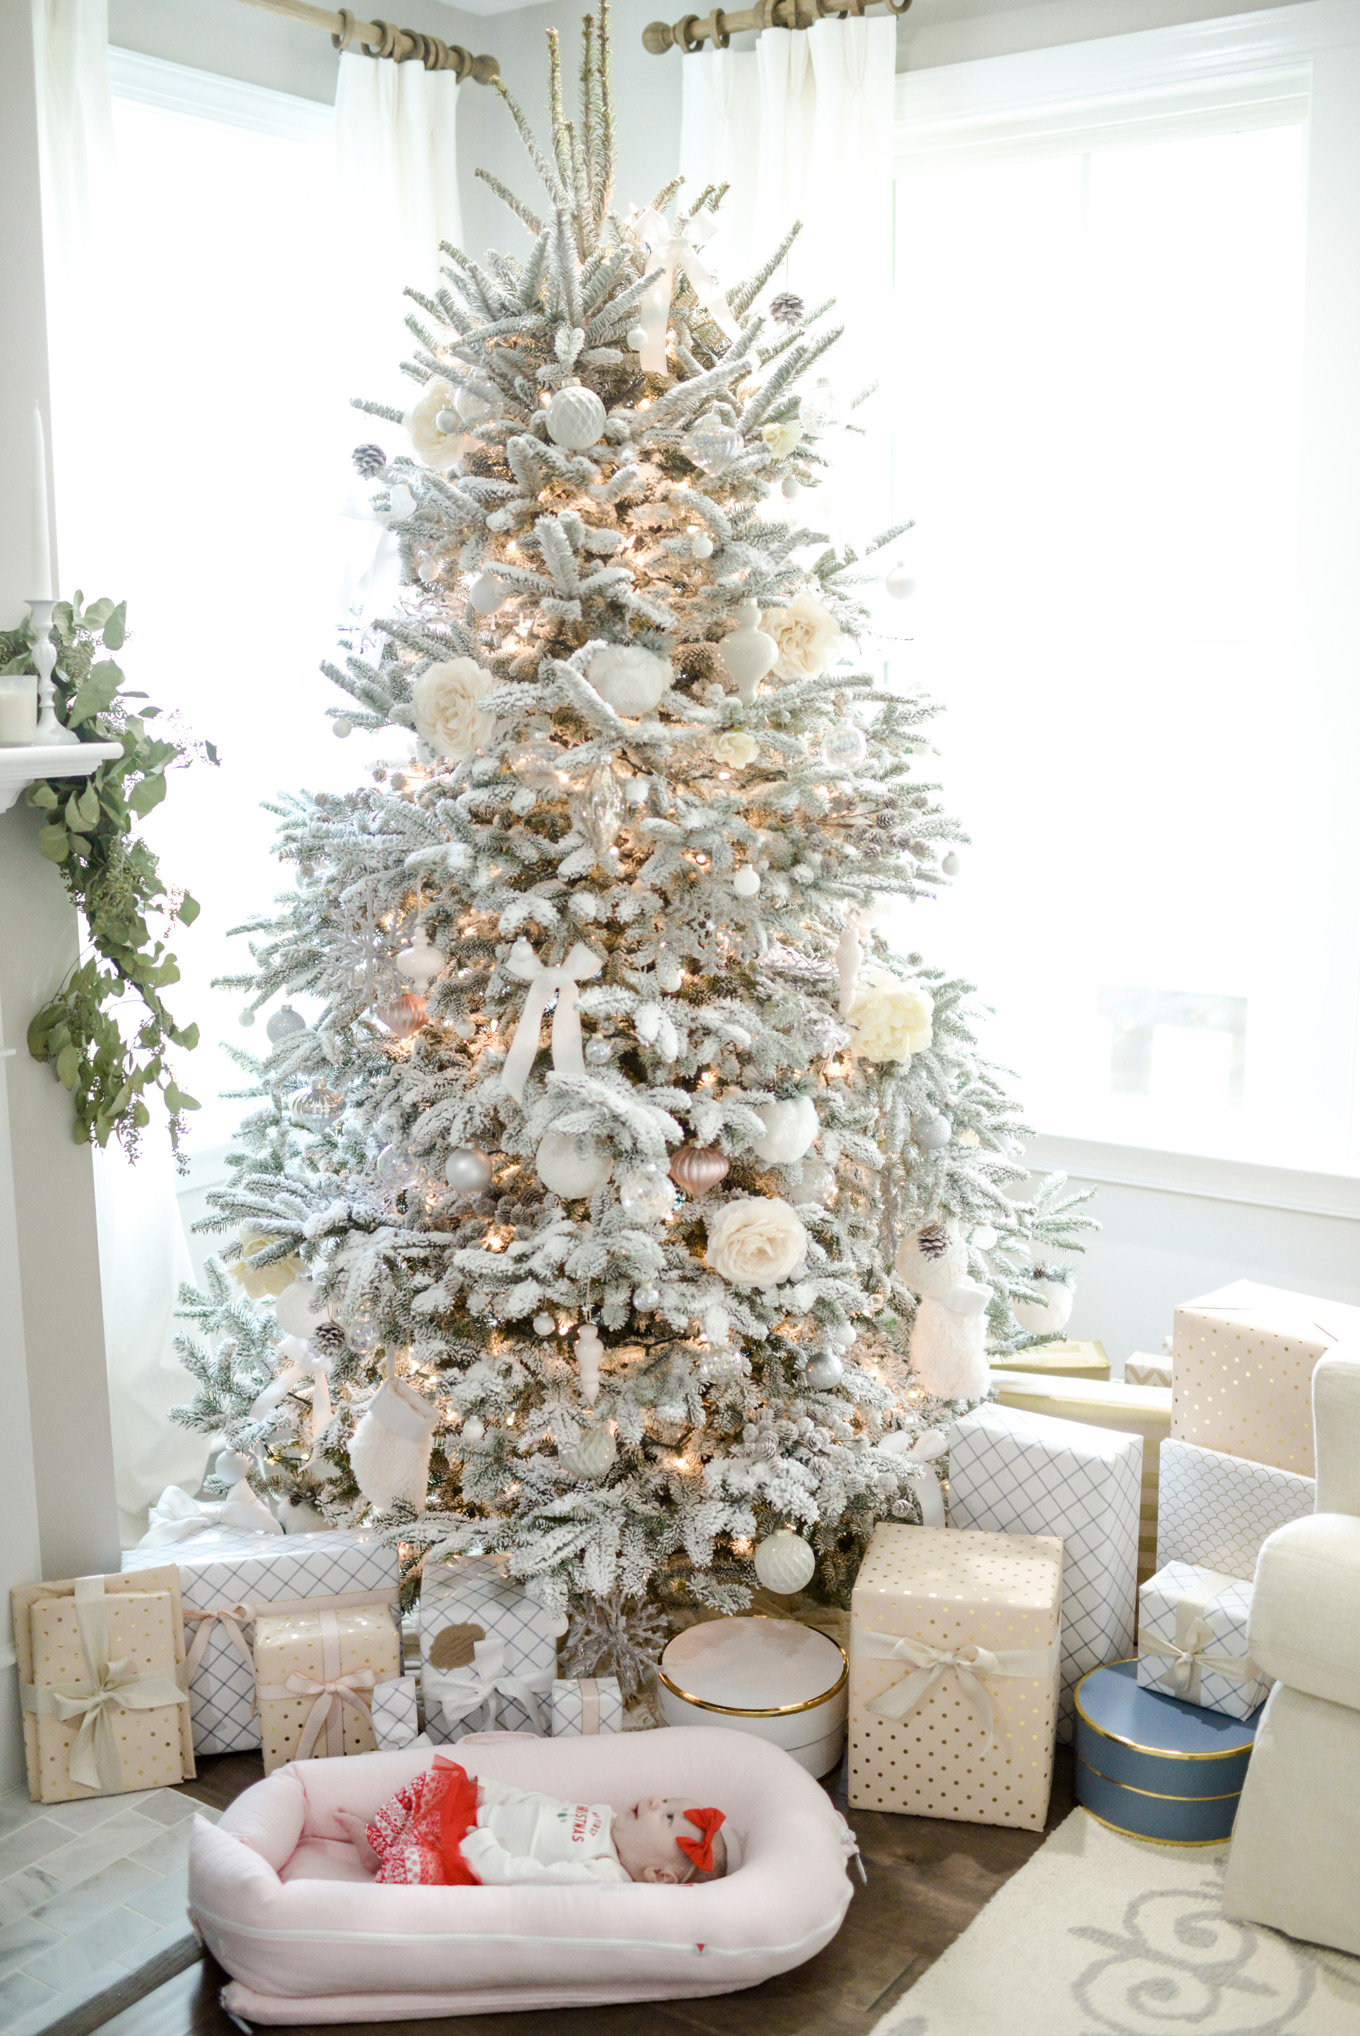 A baby and presents | Lifestyle Blogger Elle Bowes shares holiday home decor ideas.